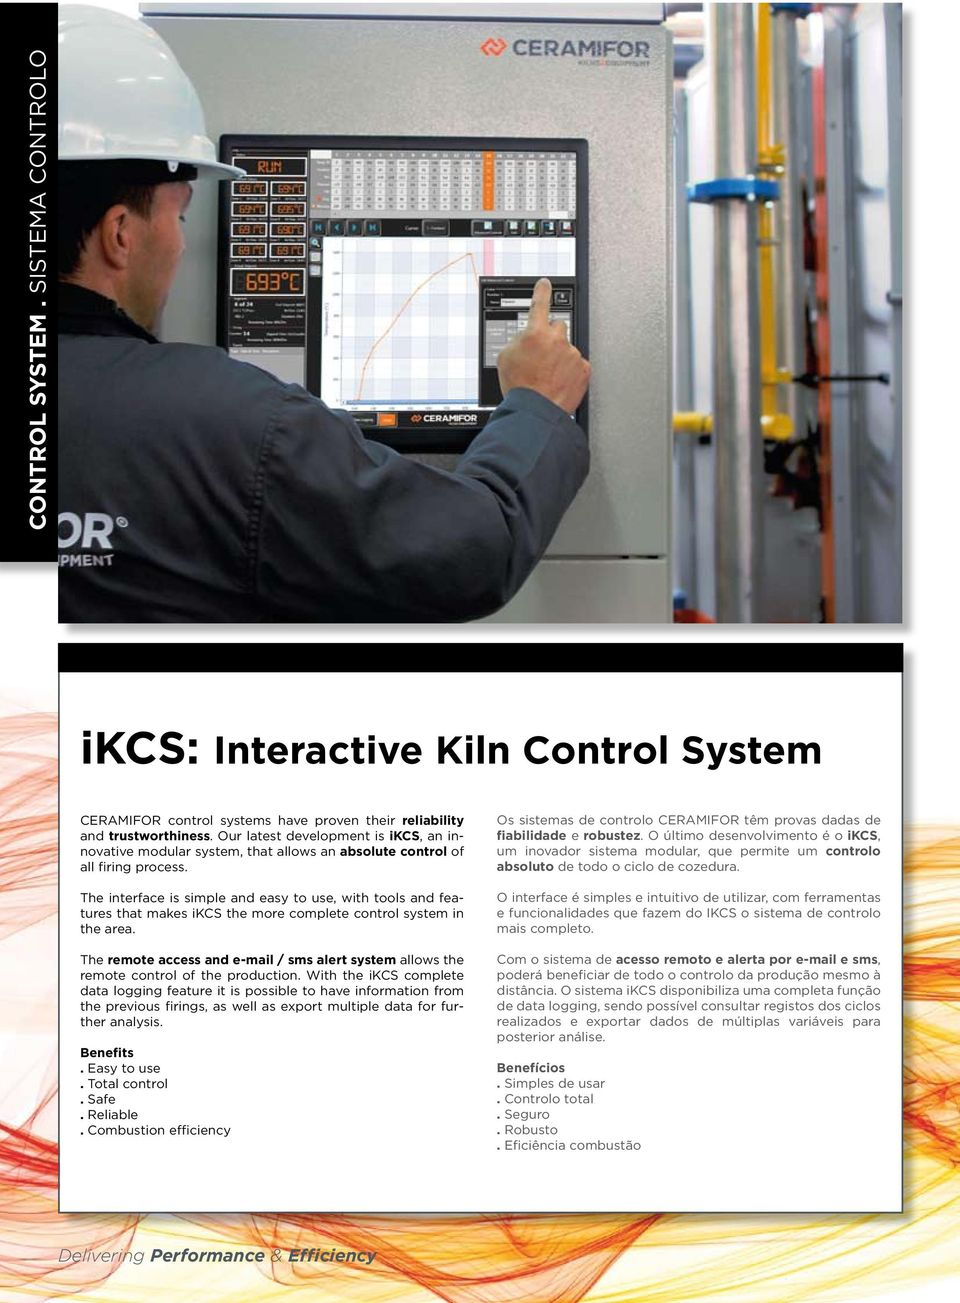 The interface is simple and easy to use, with tools and features that makes ikcs the more complete control system in the area.